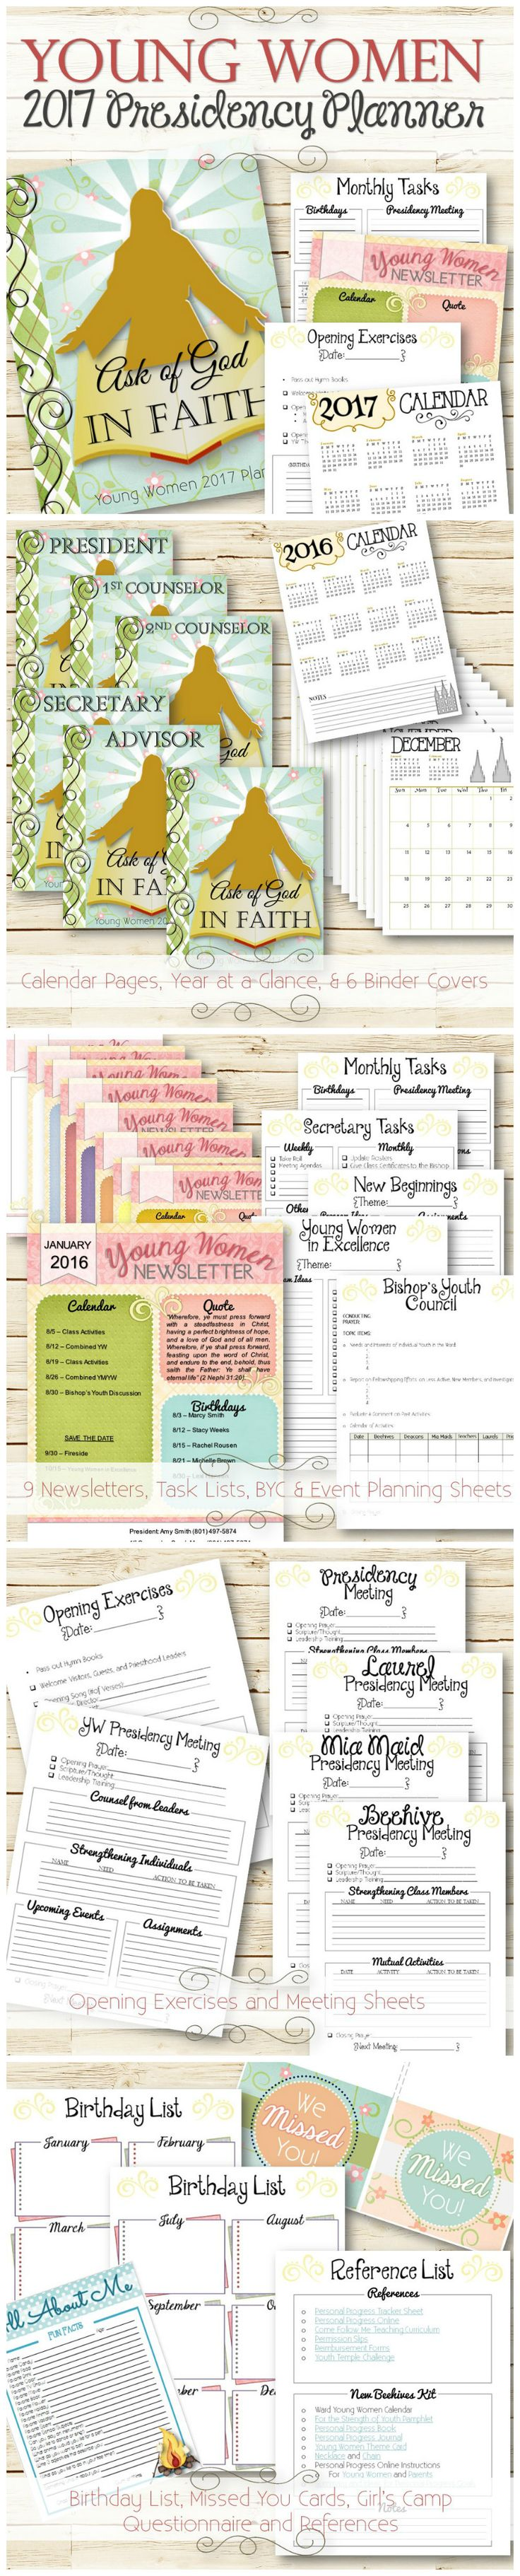 A stylish way to make managing all the responsibilities and tasks in the LDS Young Women's Program simple and easy. The planner includes over 40 pages with calendars, newsletters, missed you cards, birthday lists, presidency meeting agendas, new Beehive Kit, planning sheets, BYC agenda, conducting sheets and more!